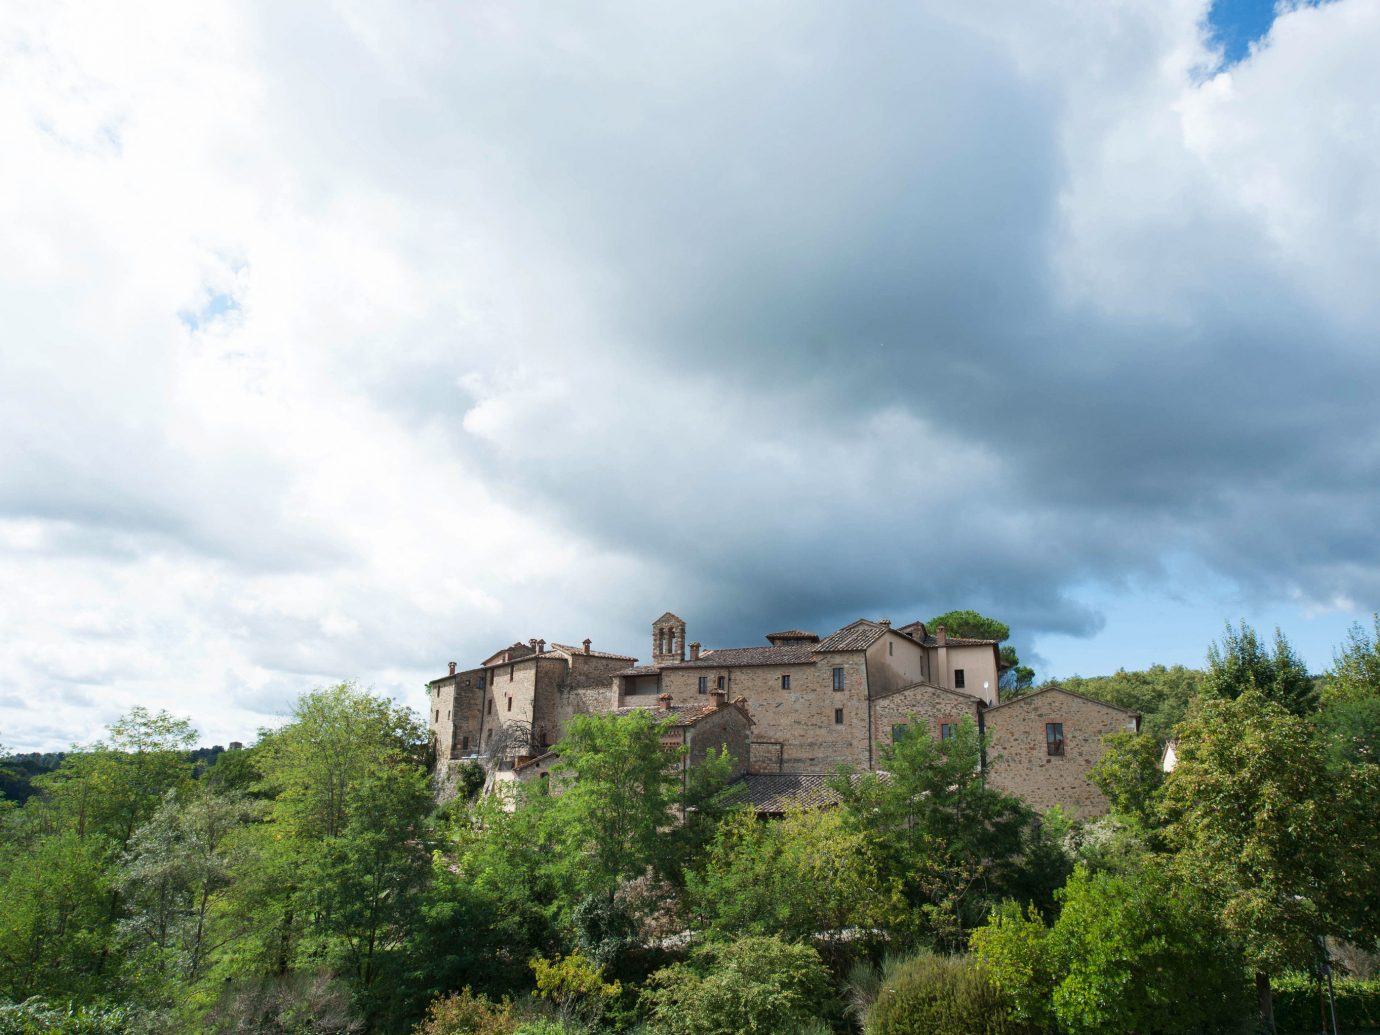 europe Hotels Italy Romance sky tree outdoor building cloud hill rural area estate castle Village day